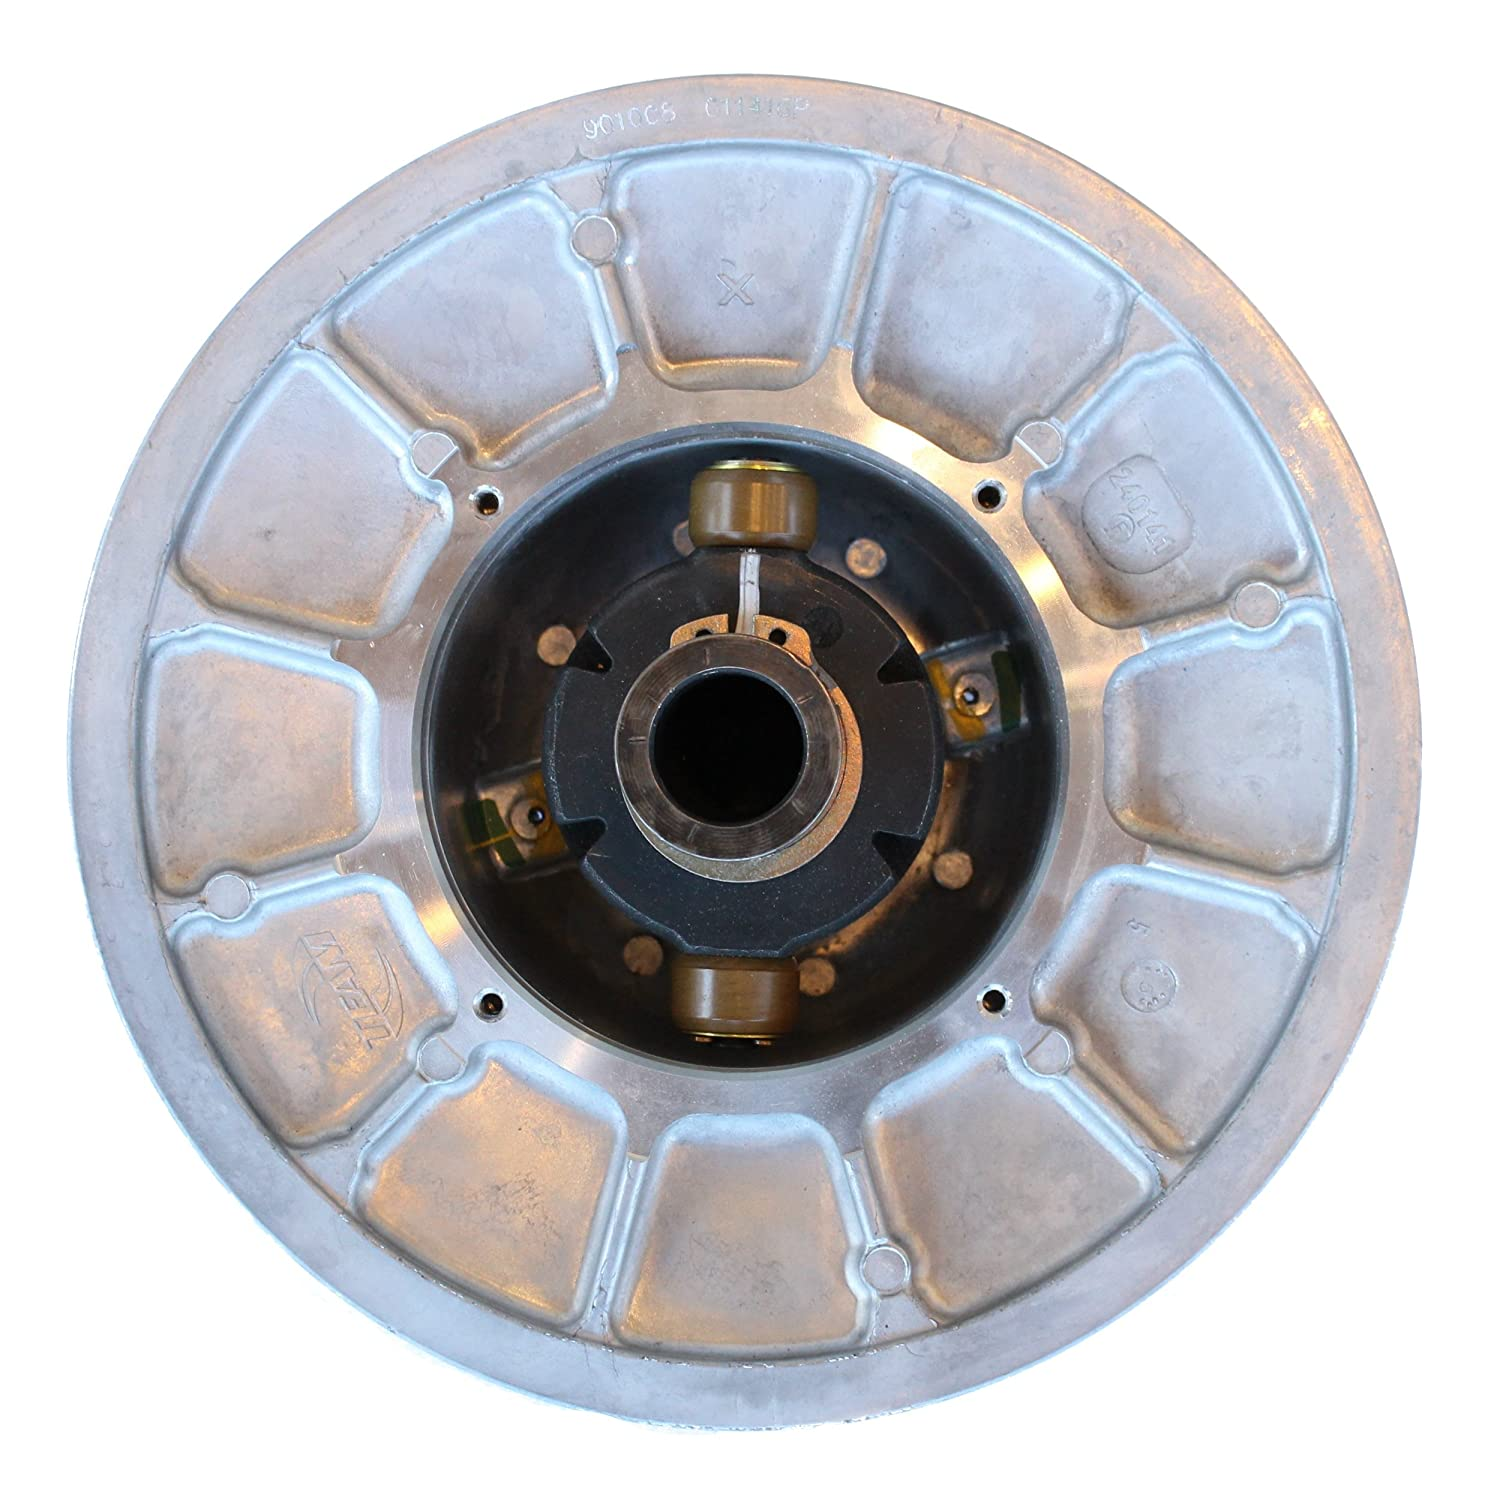 Replacement TEAM Tied Driven Clutch for RZR XP 900 Starting Line ProductsSLP 50-303 RZR-4 XP 900 /& RZR 570